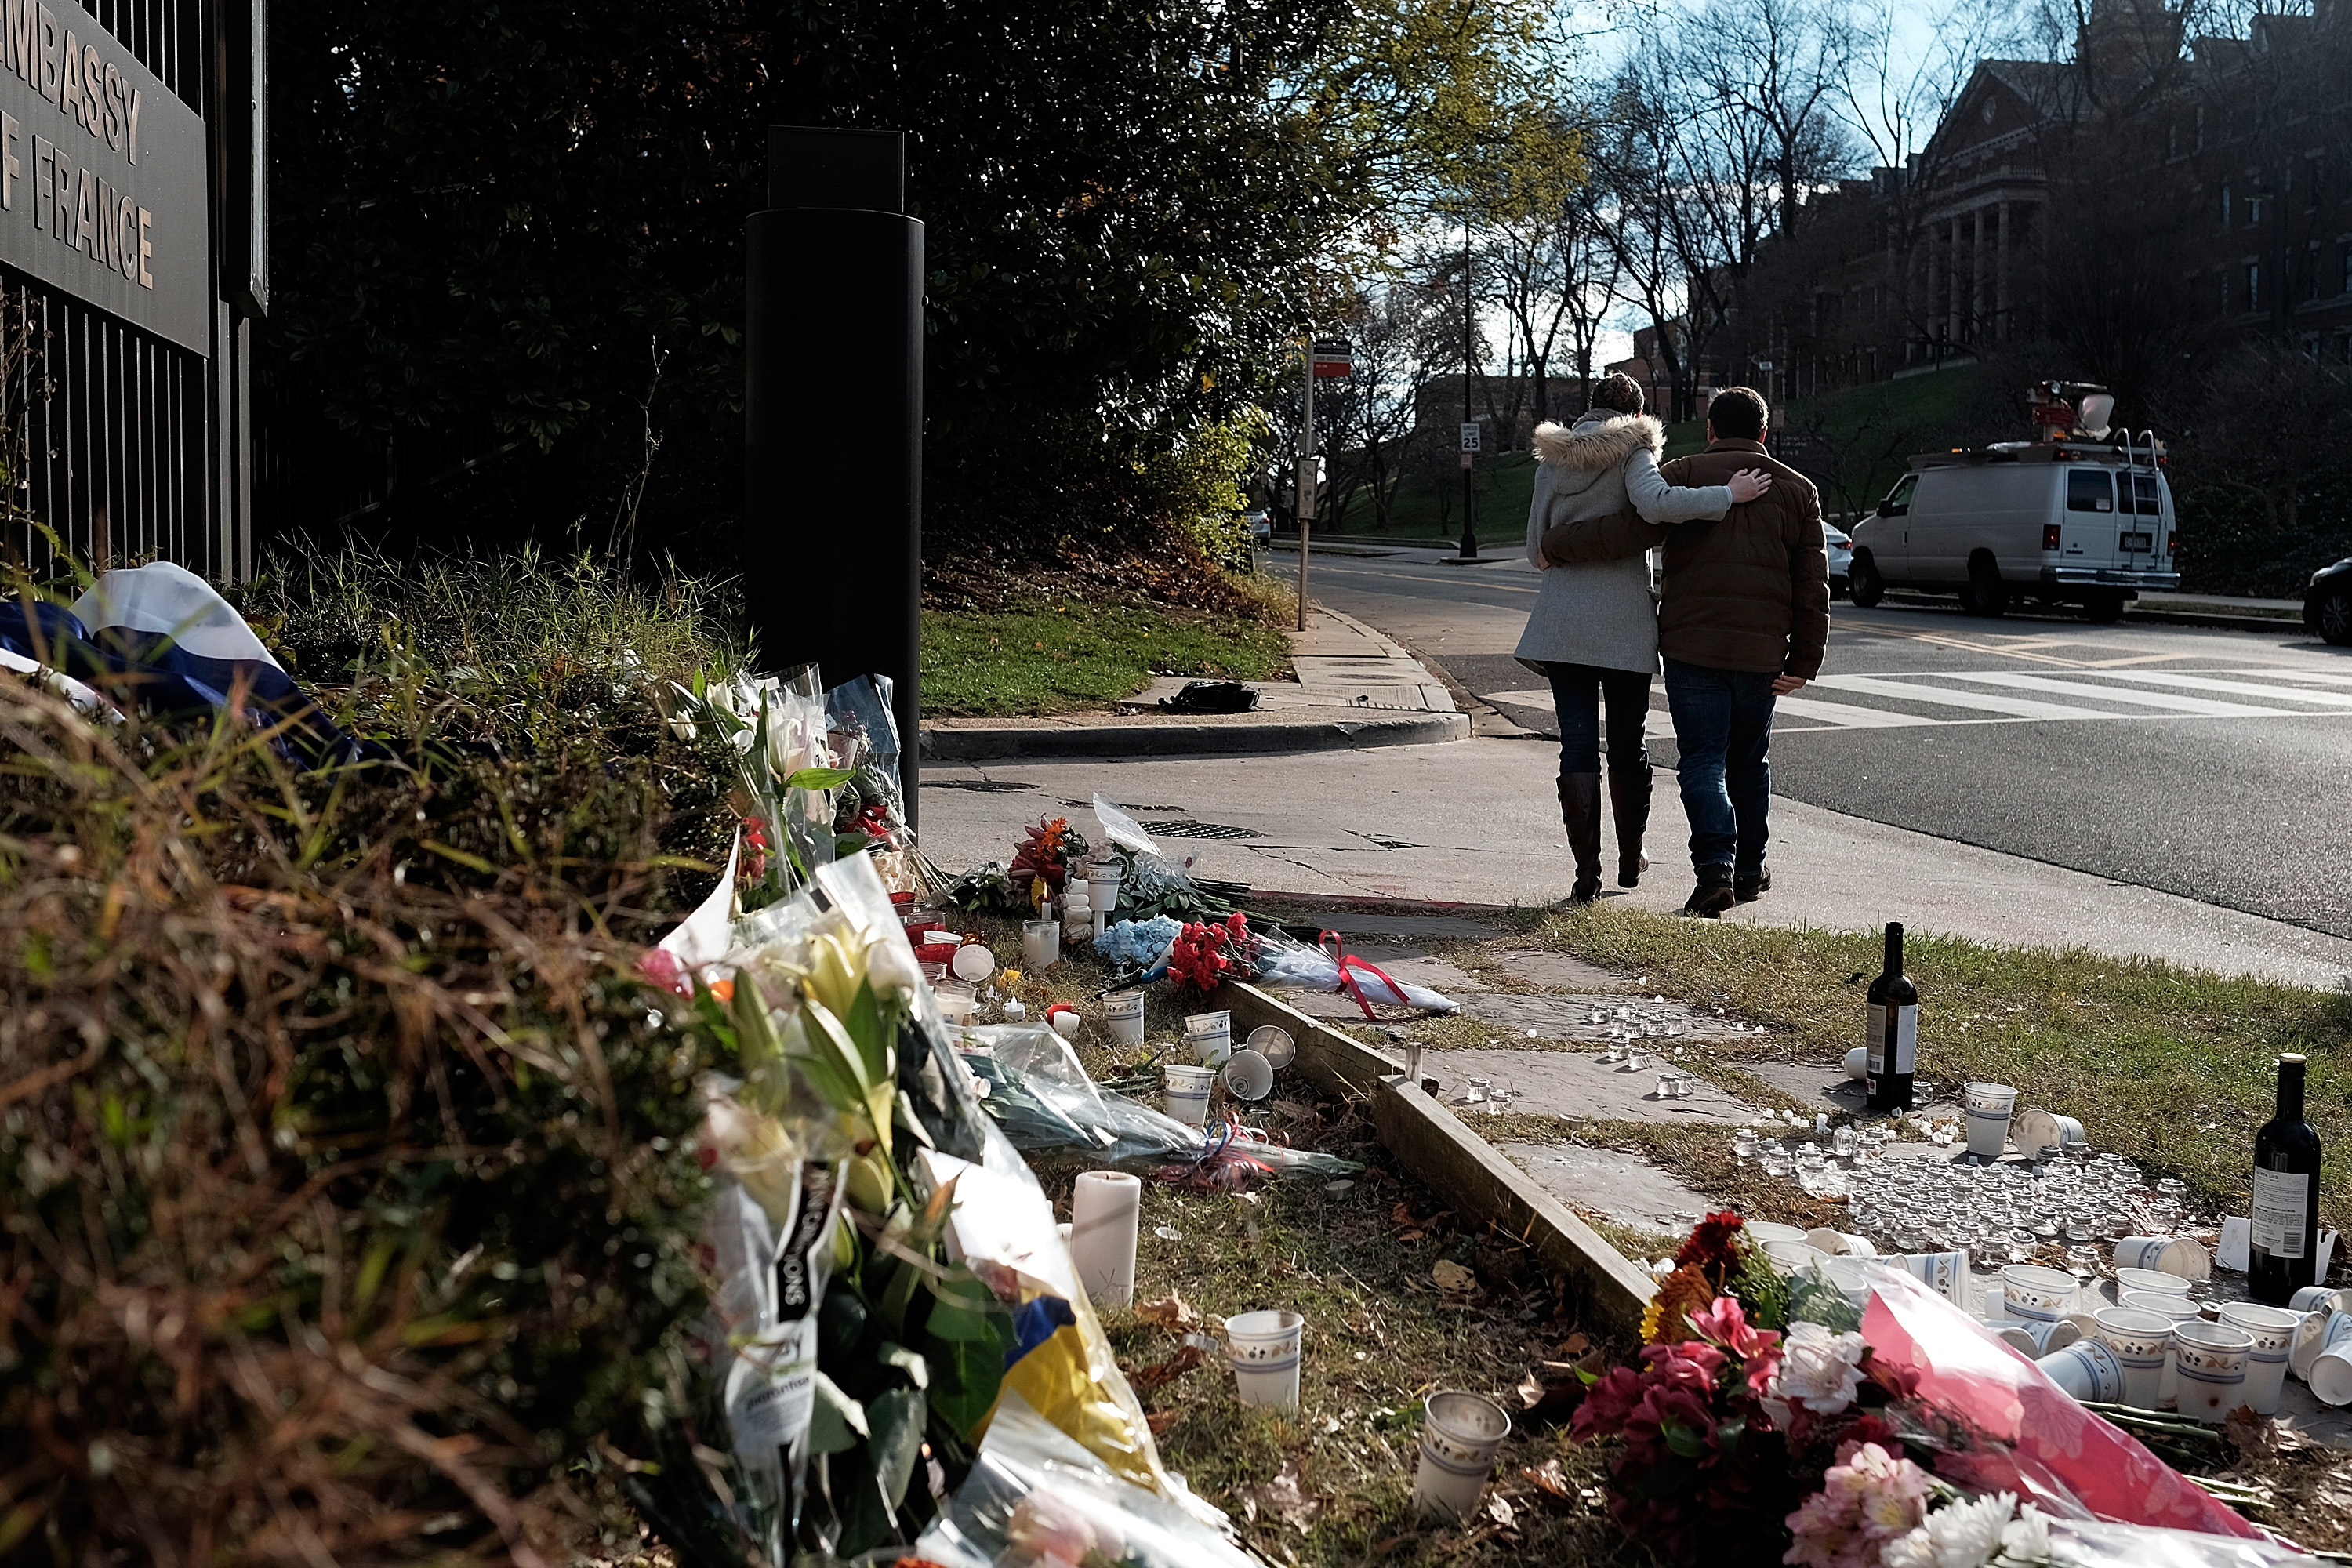 Two people embrace after paying respects at the French Embassy in Washington, DC on Nov. 14, 2015.